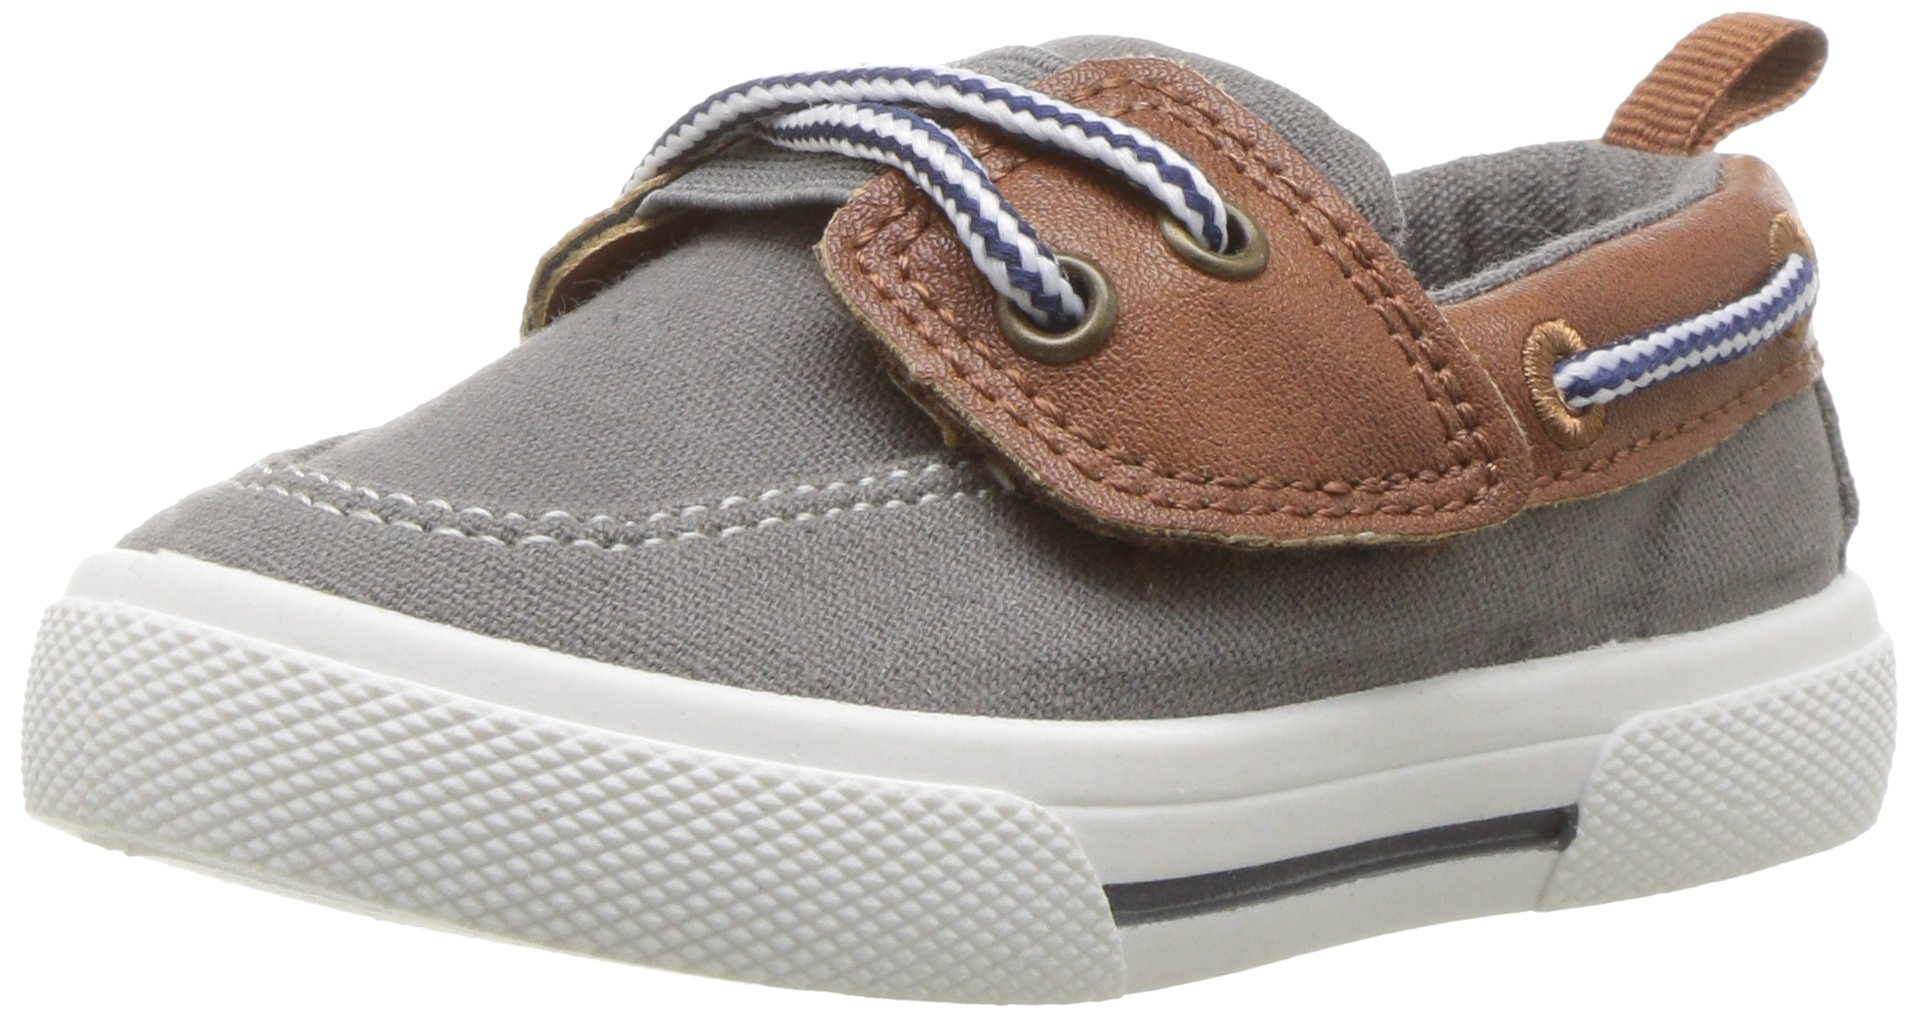 carter's Boy's Cosmo Casual Slip-on Sneaker, Grey, 7 M US Toddler